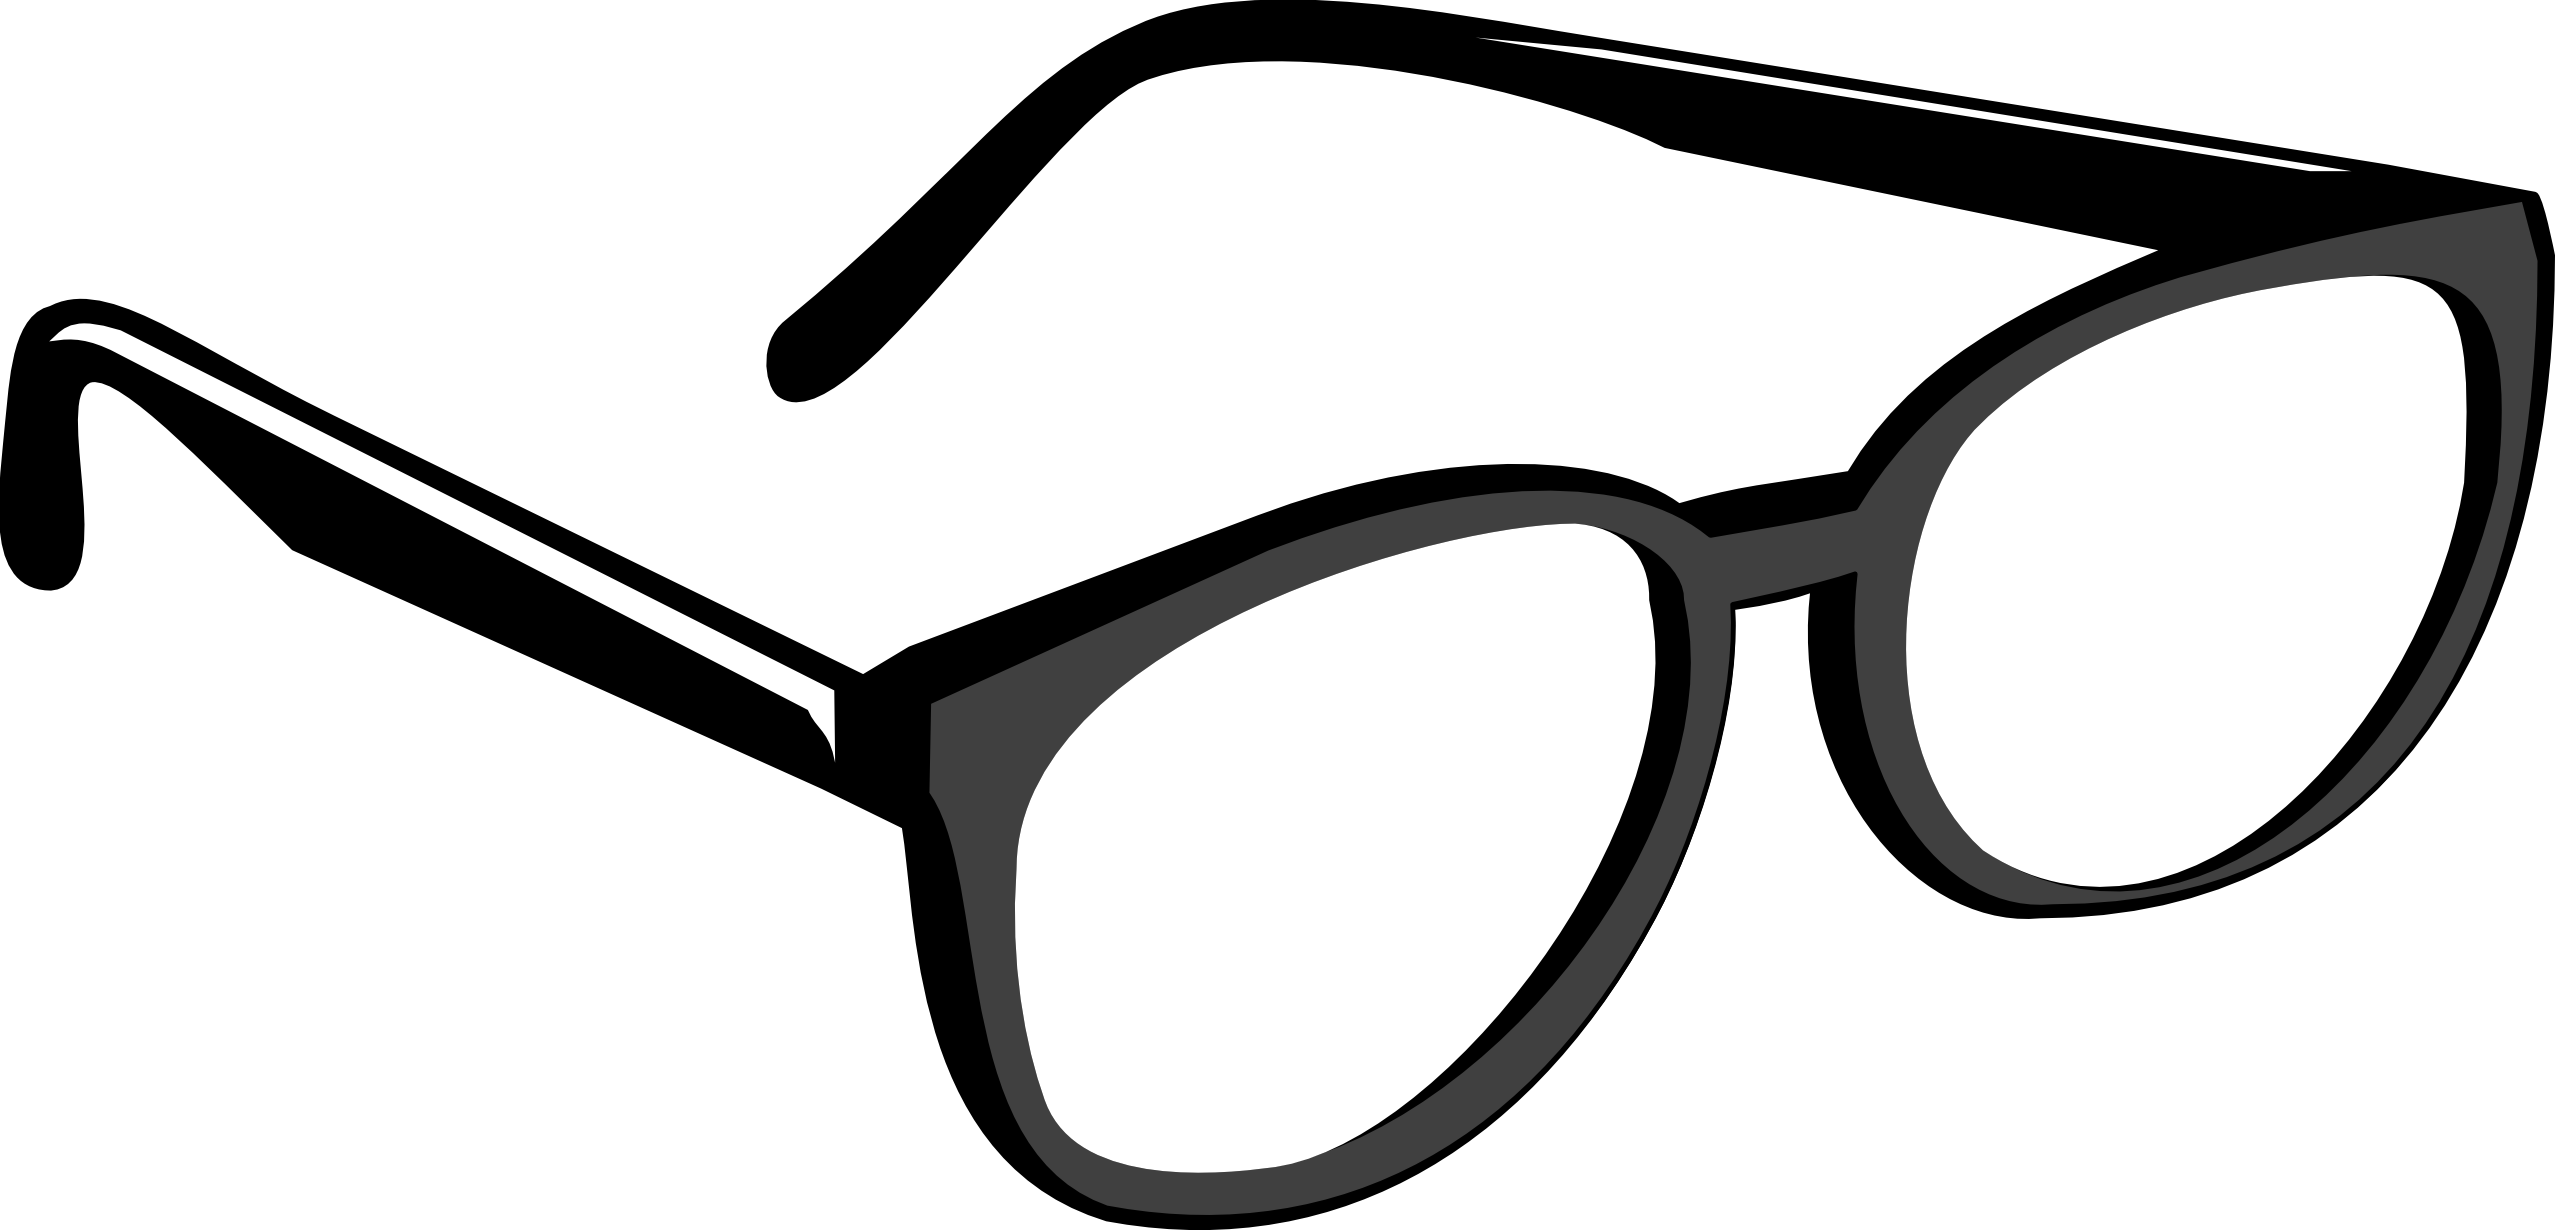 Google clipart white transparent library Glasses Clipart Black And White | Clipart Panda - Free Clipart Images transparent library